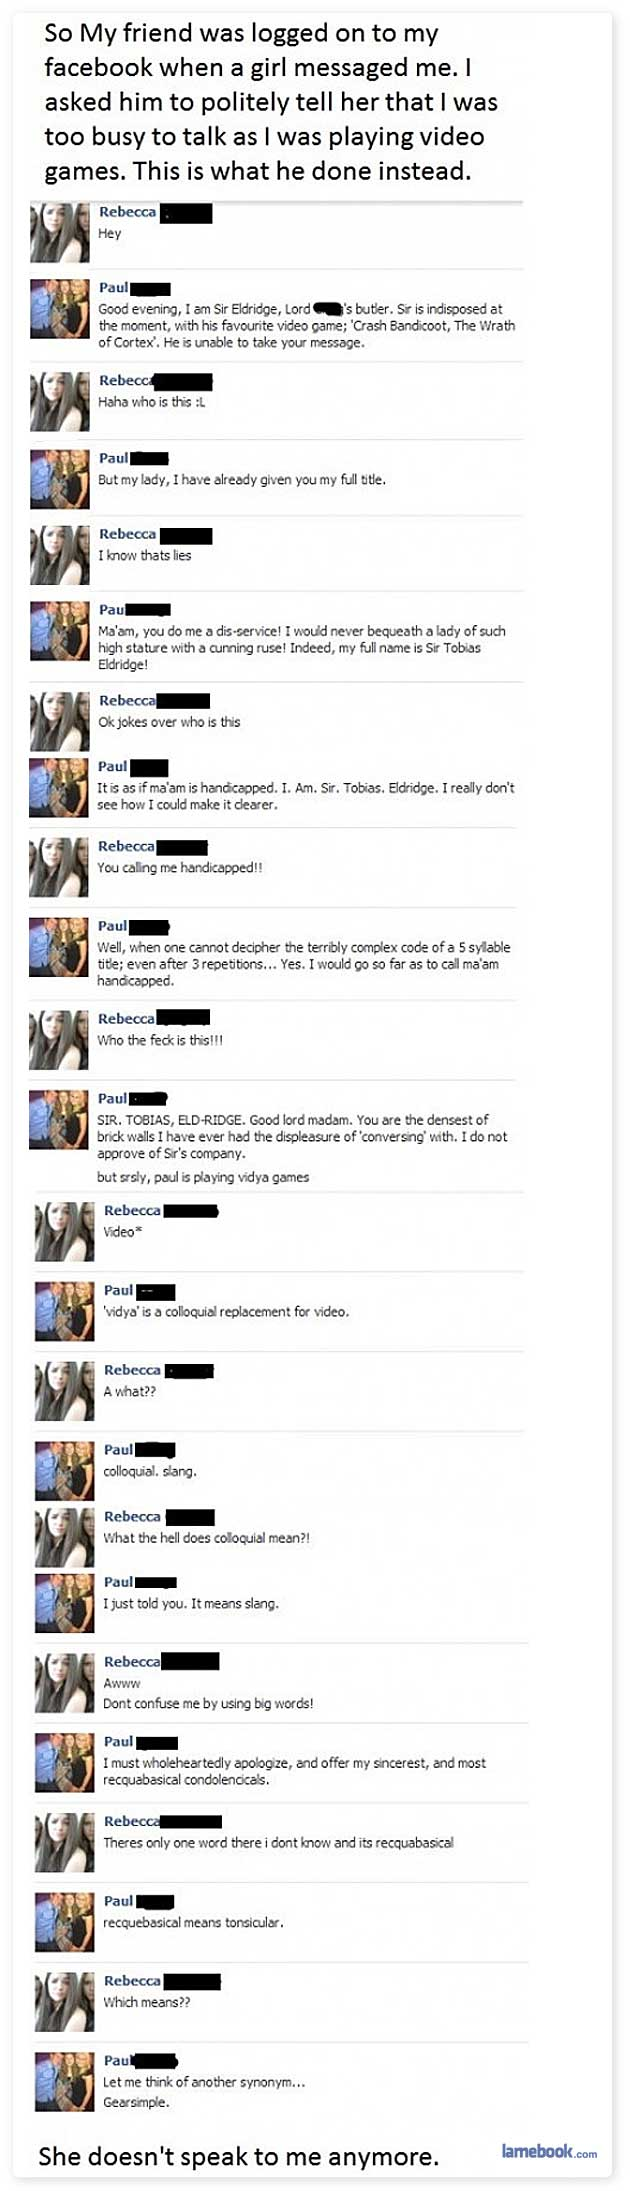 Lamebook – Funny Facebook Statuses, Fails, LOLs and More – The Original » Good Evening